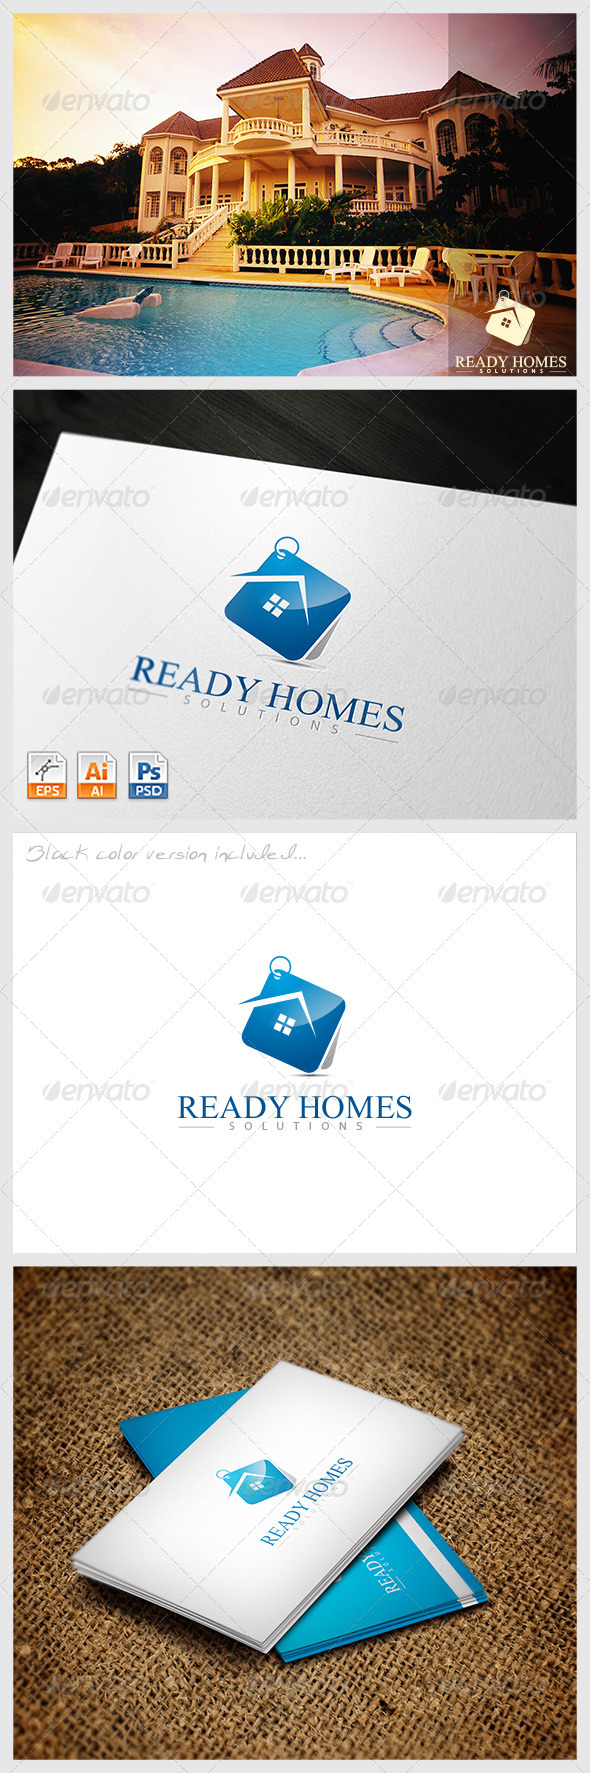 Ready Homes Solutions Logo - Buildings Logo Templates